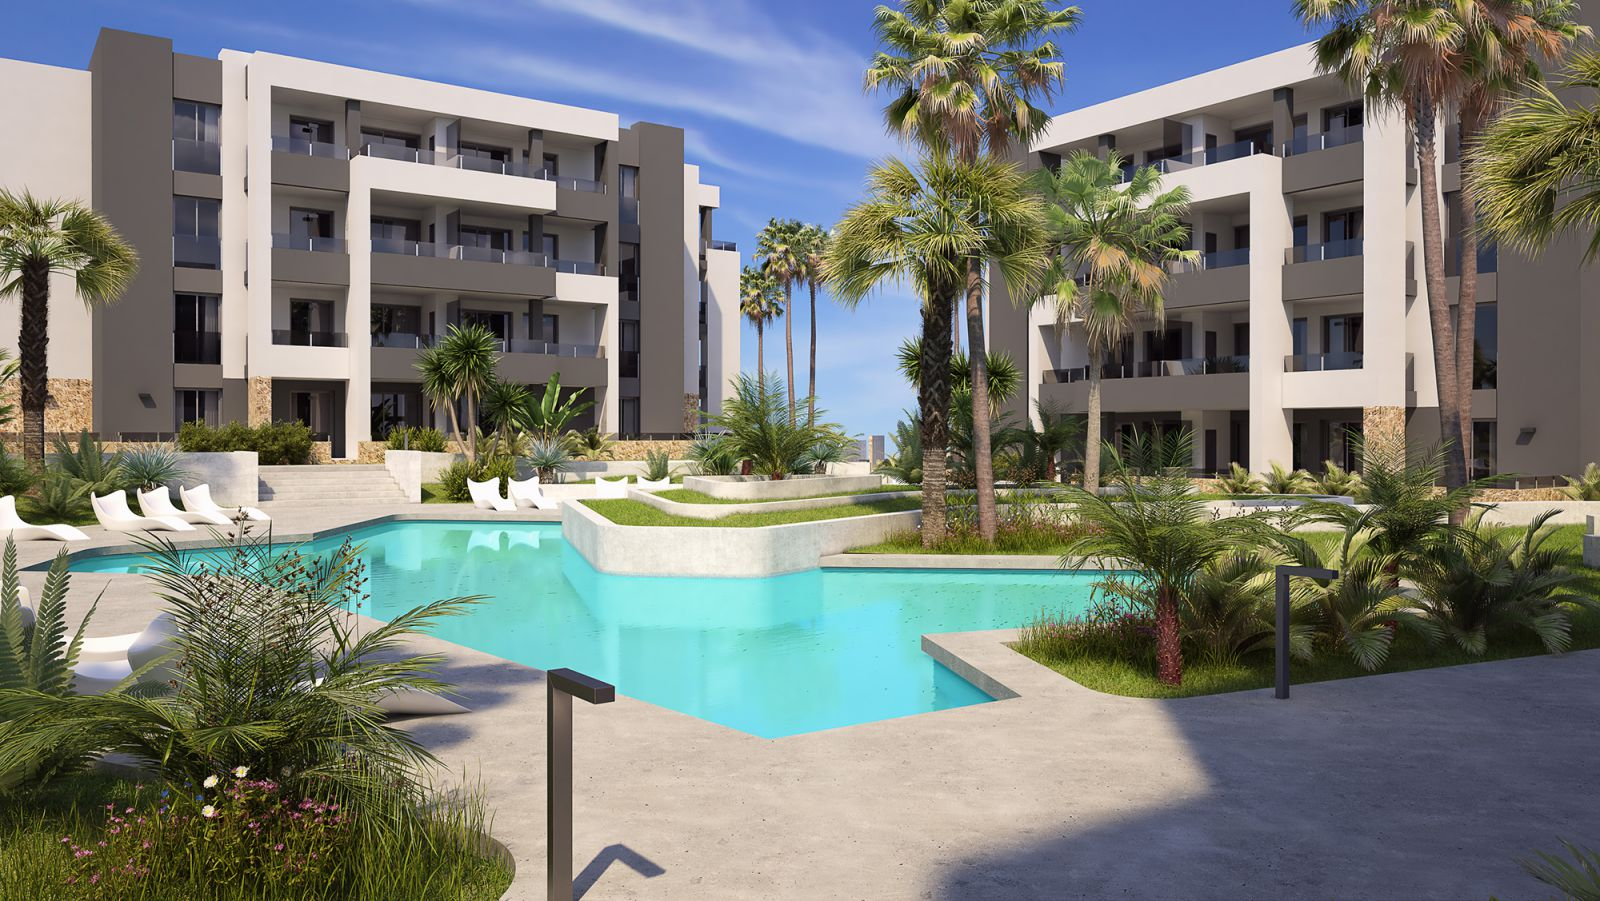 New Build 2 and 3 Bedrooms Apartments with Swimming Pool For Sale in Orihuela Costa